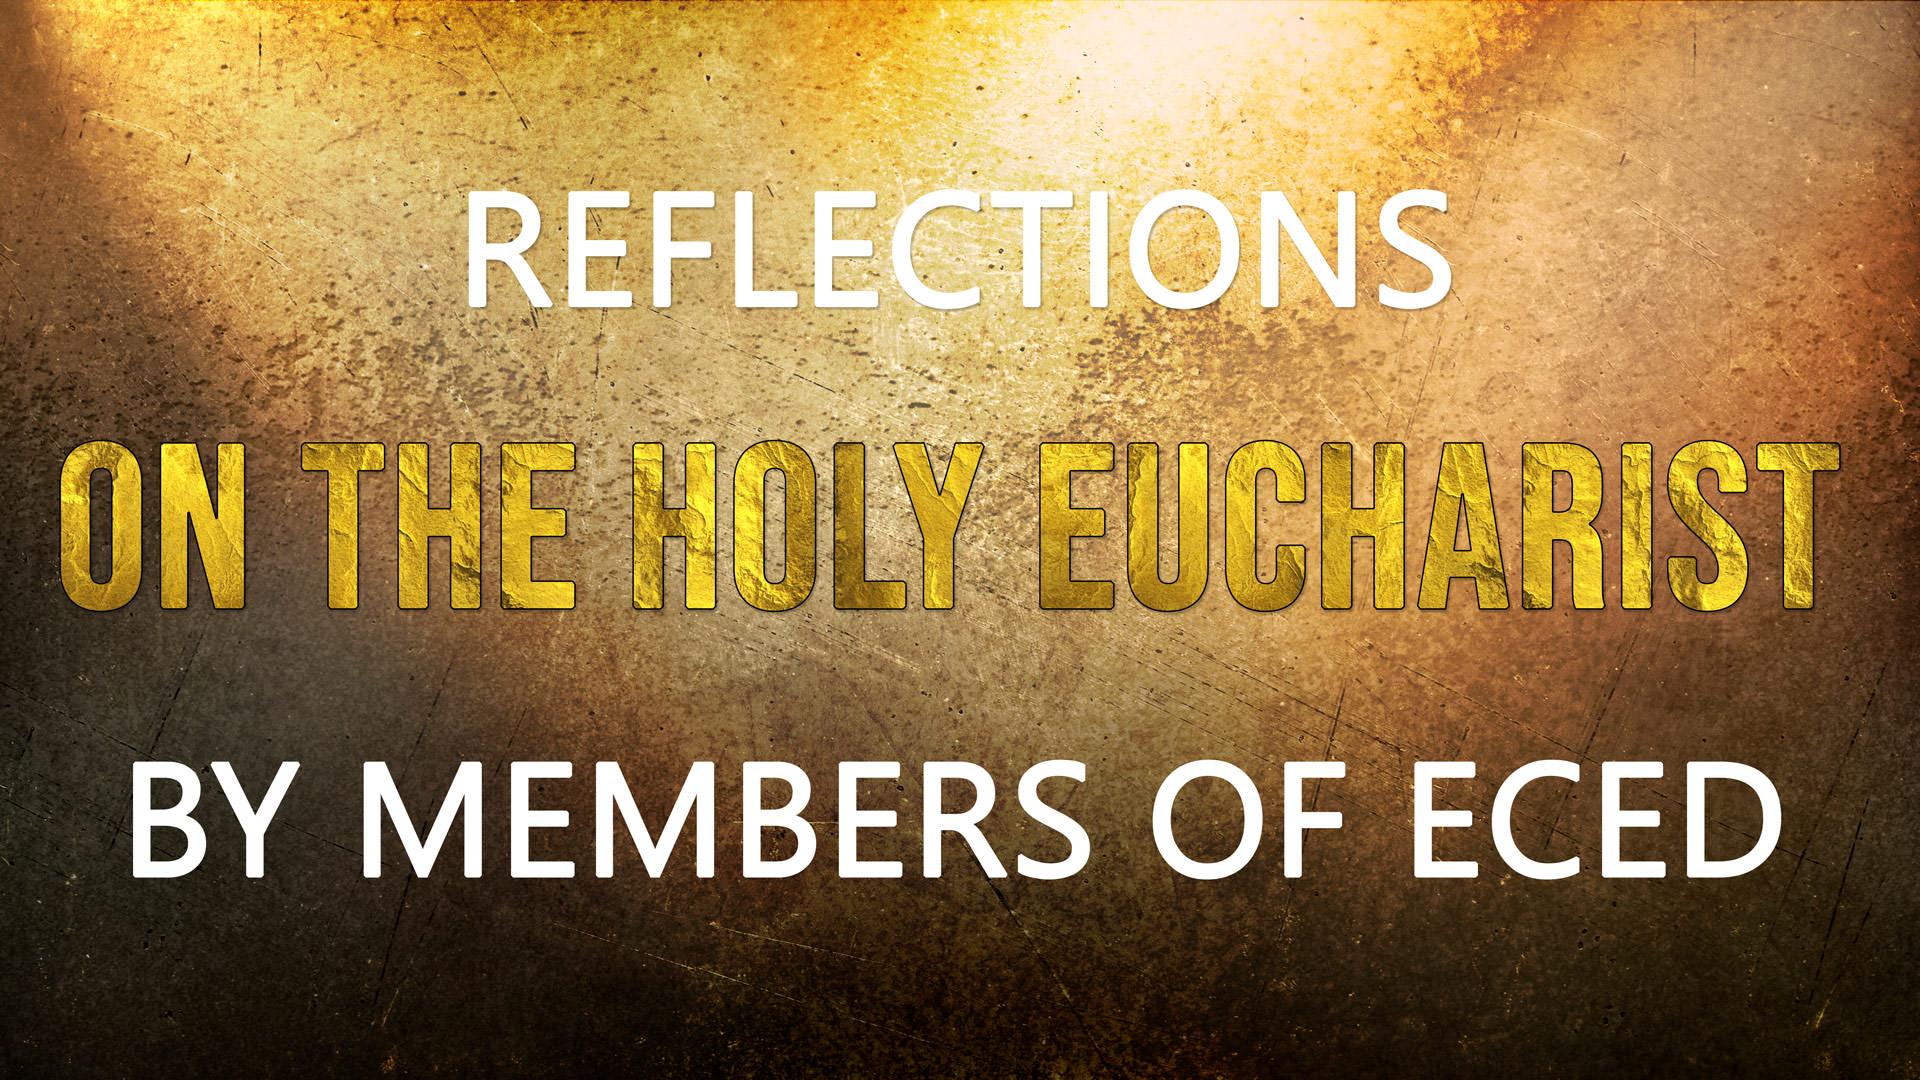 The Early Church Fathers on the Holy Eucharist